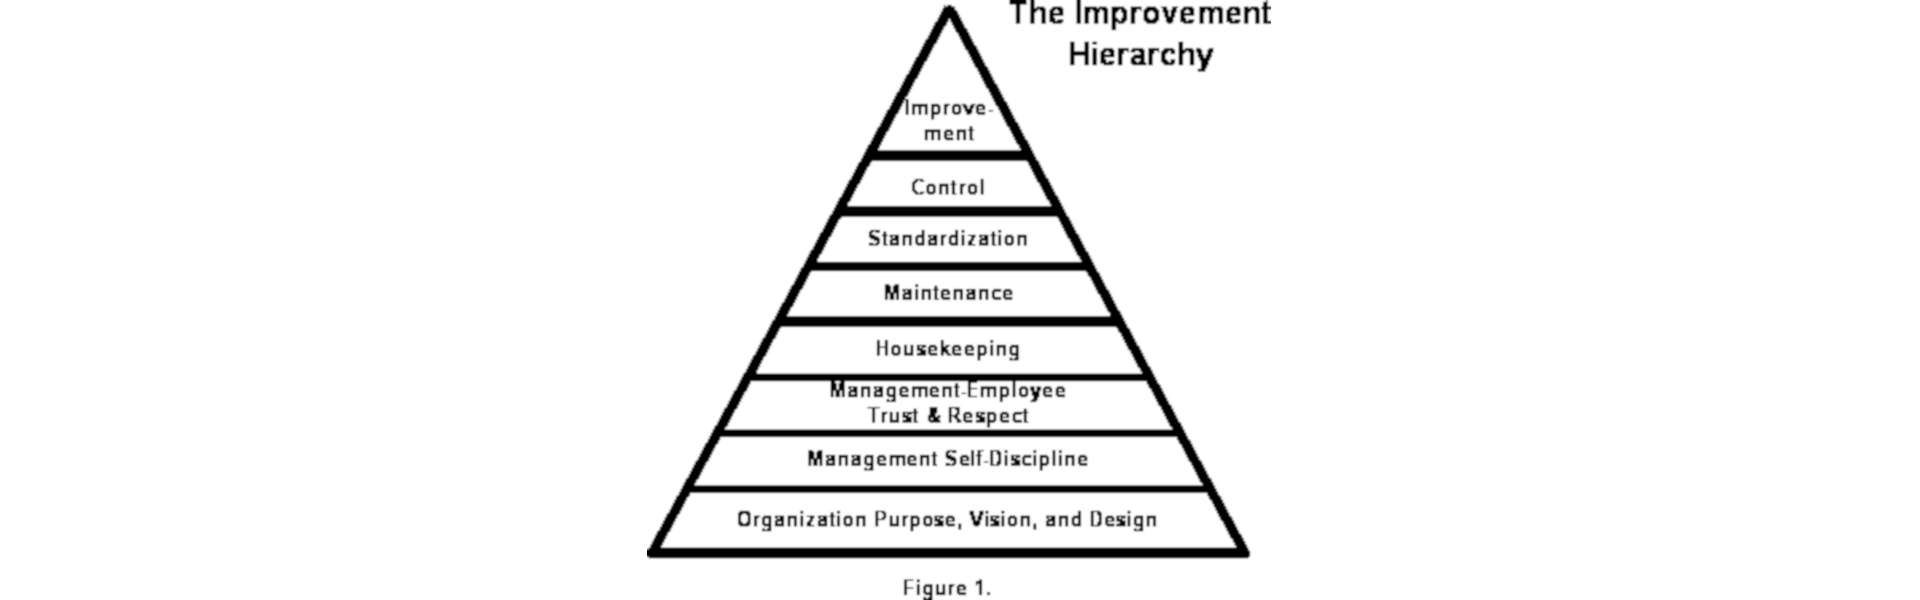 The Improvement Hierarchy